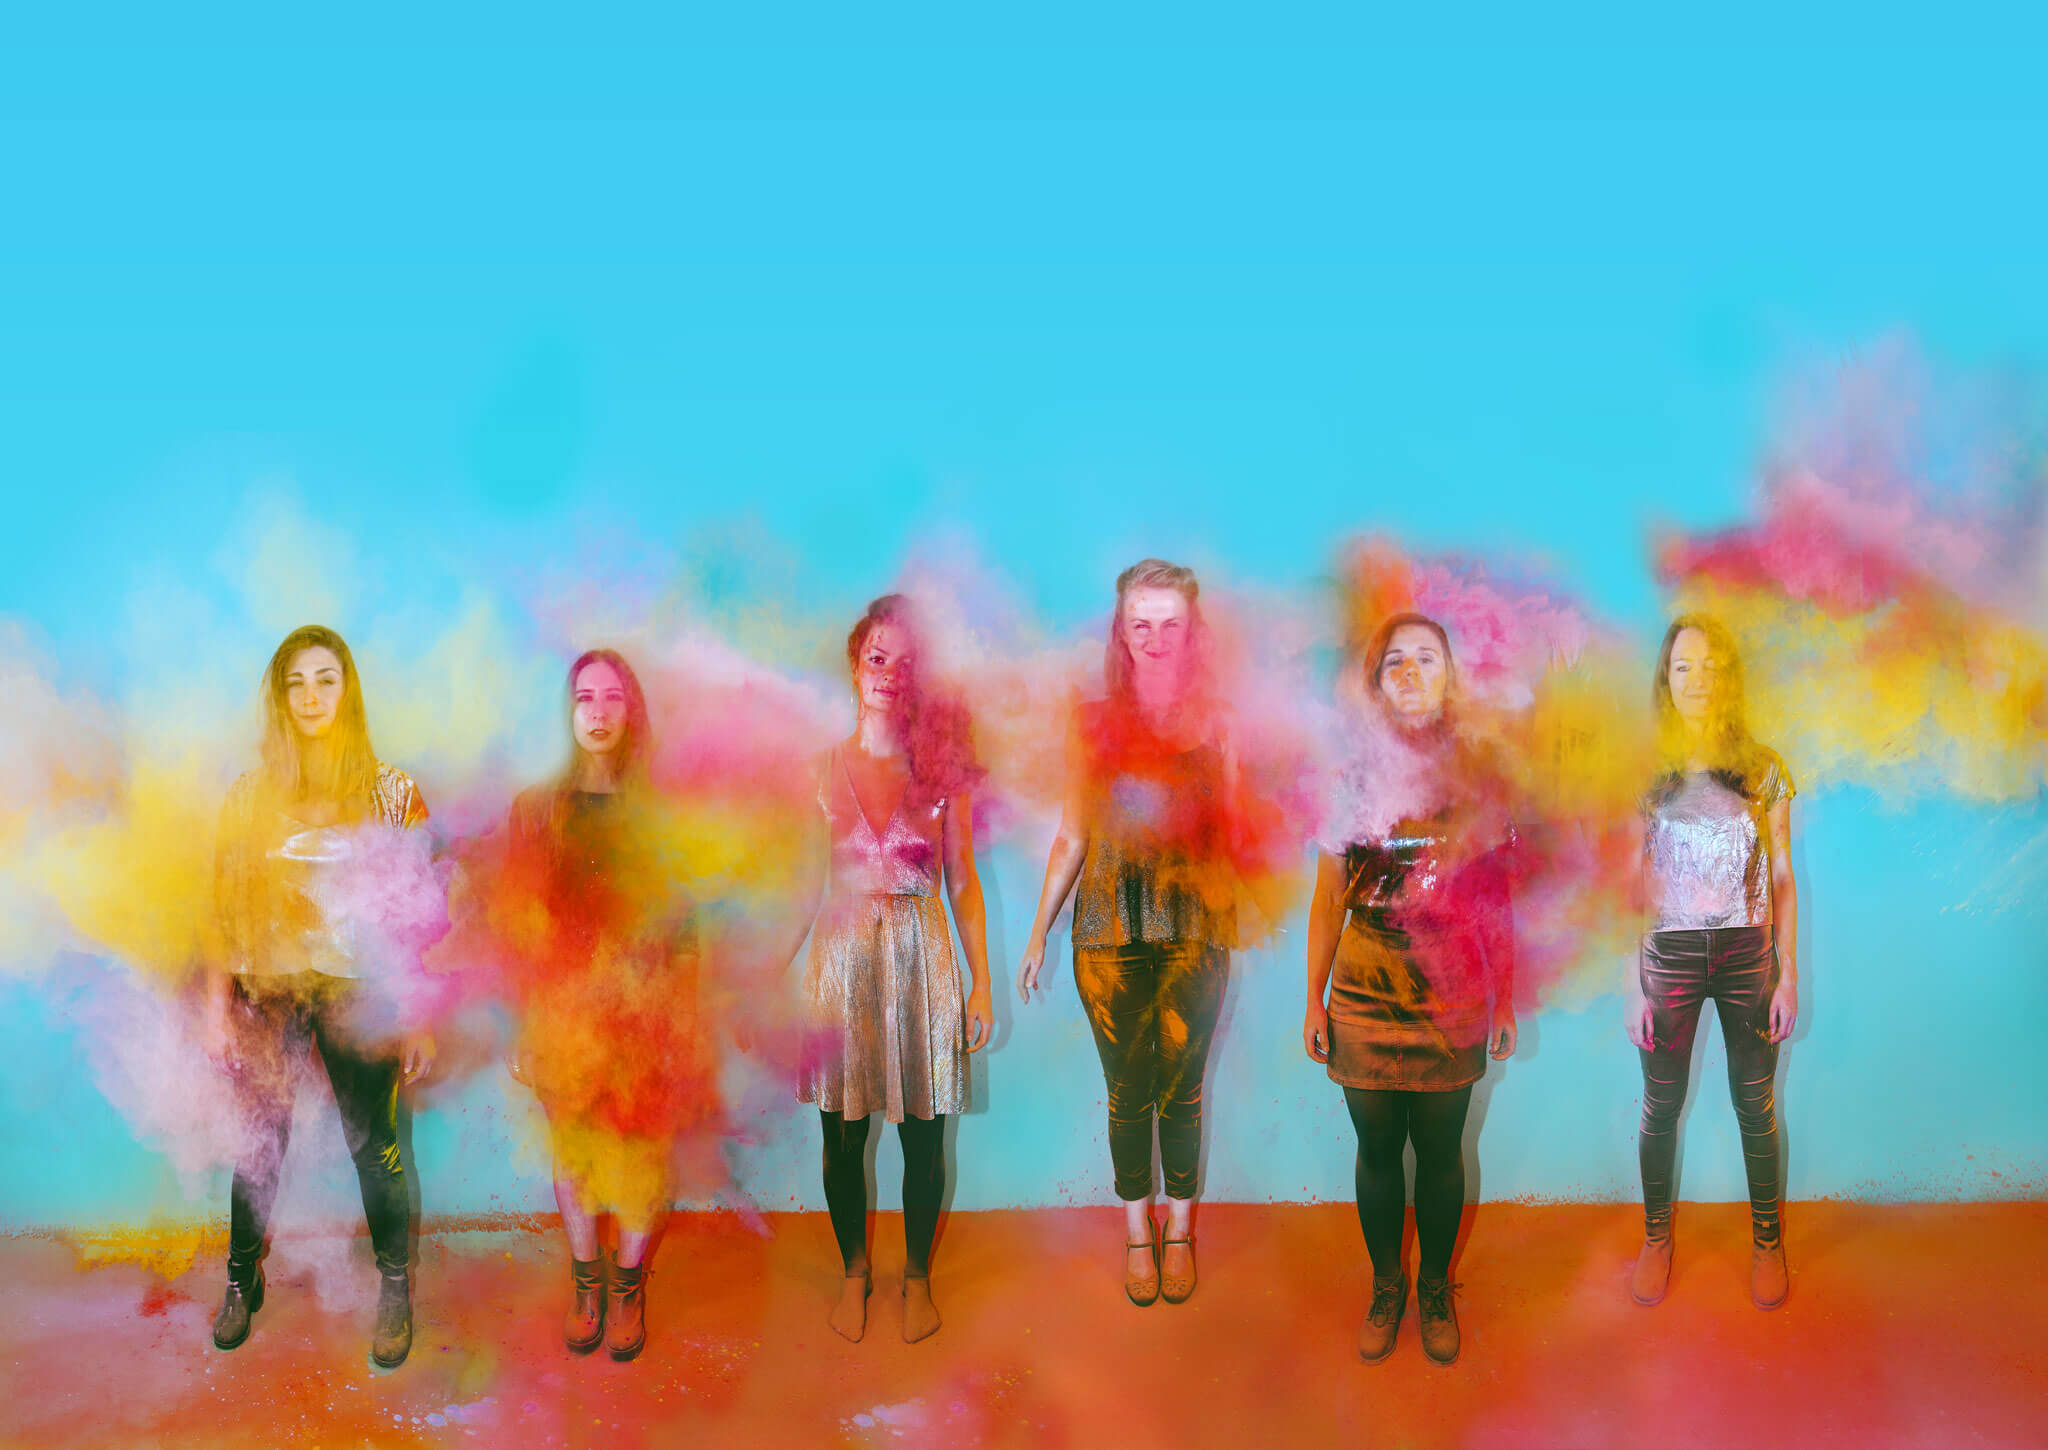 Six women stand in a line against a blue and orange backdrop. They are covered in paint powder which is also lingering in the air.